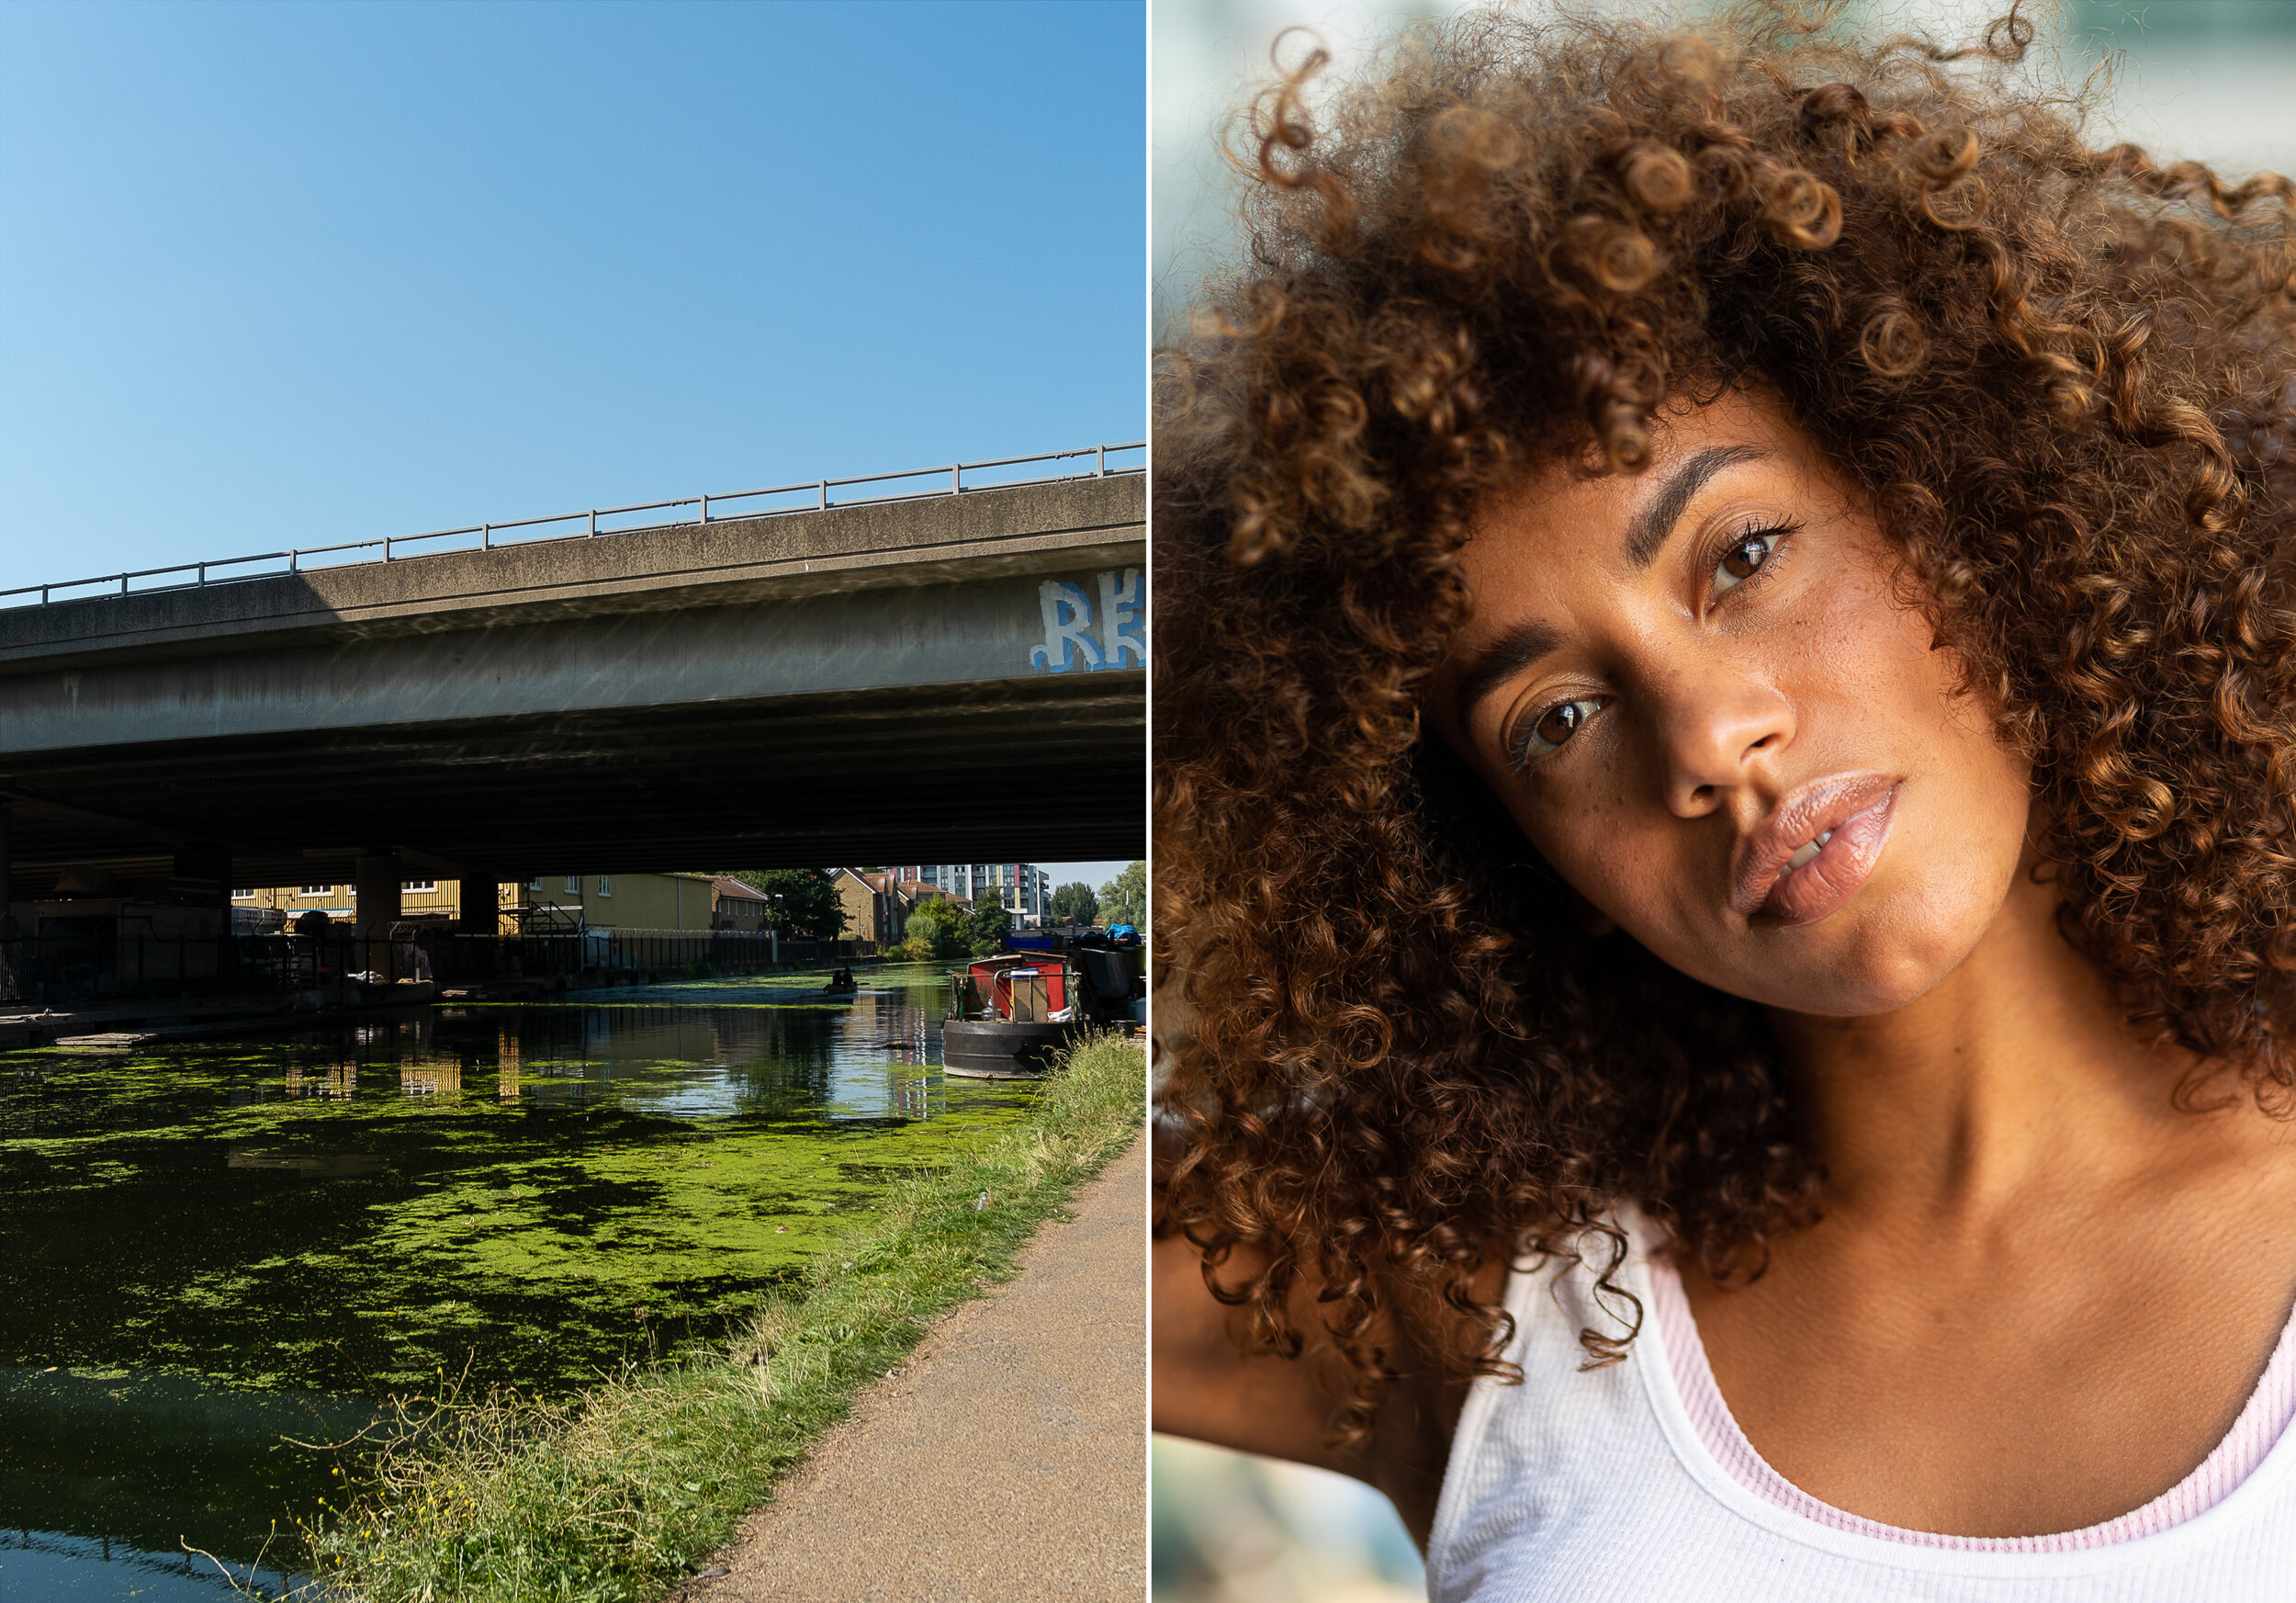 Capture Collect Photography - Hikaru Funnell - Portrait Collaboration - Yasmine Smith + Helena Dowling - Diptych -  27-8-19 - 4.jpg